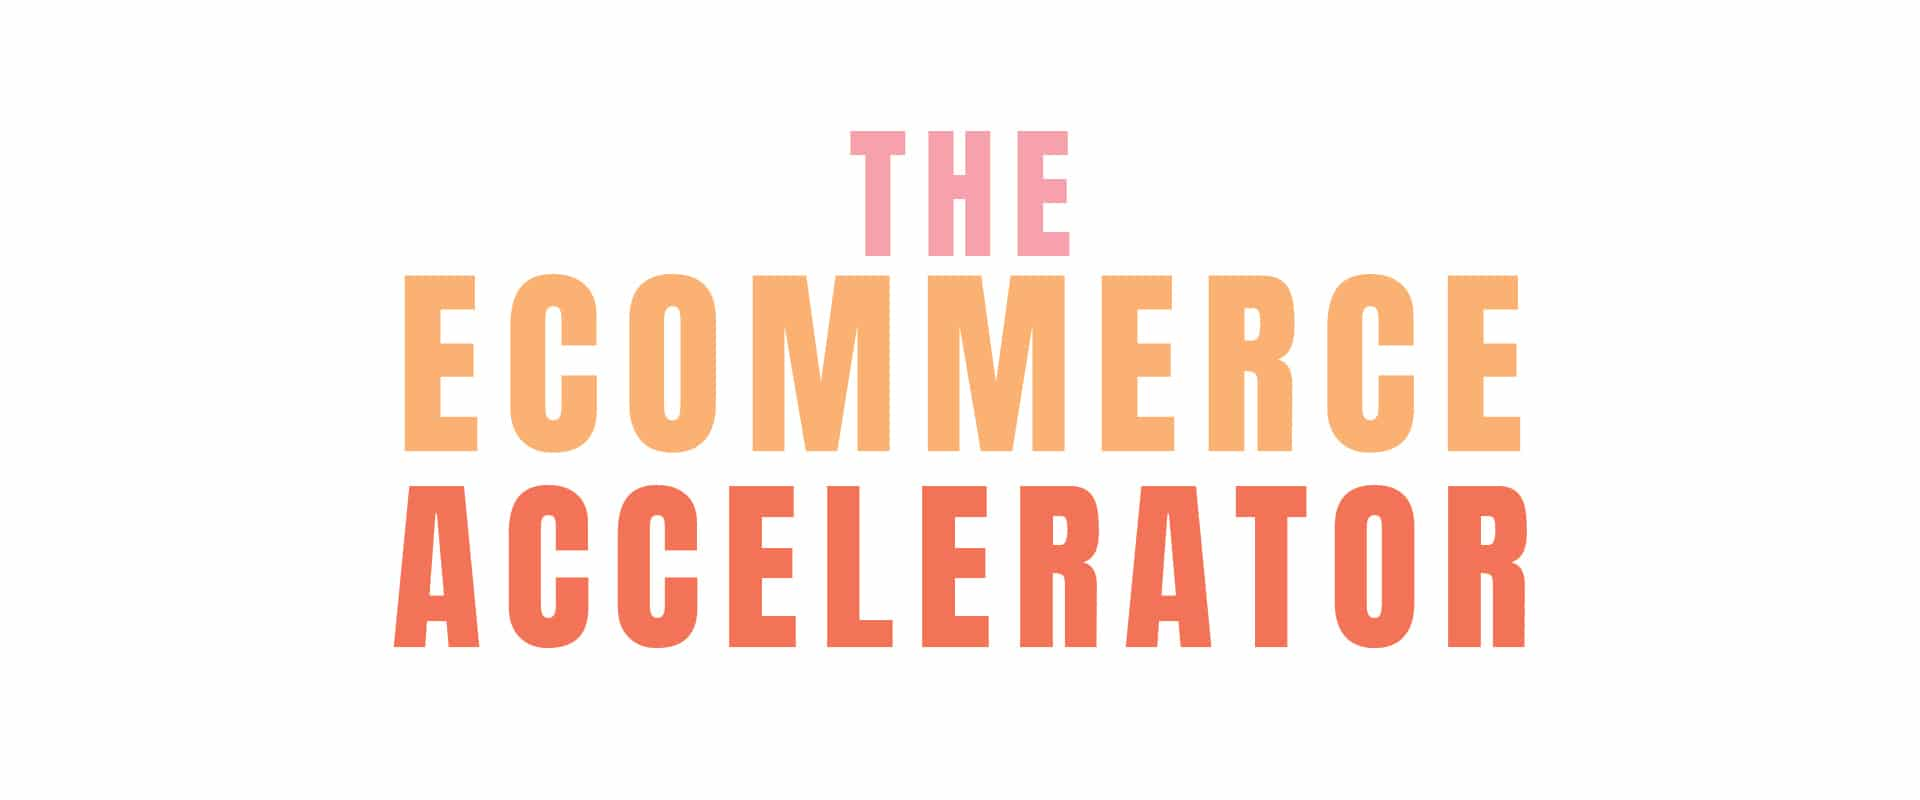 The ecommerce accelerator typeface logo - lorna scull digital marketing consultant